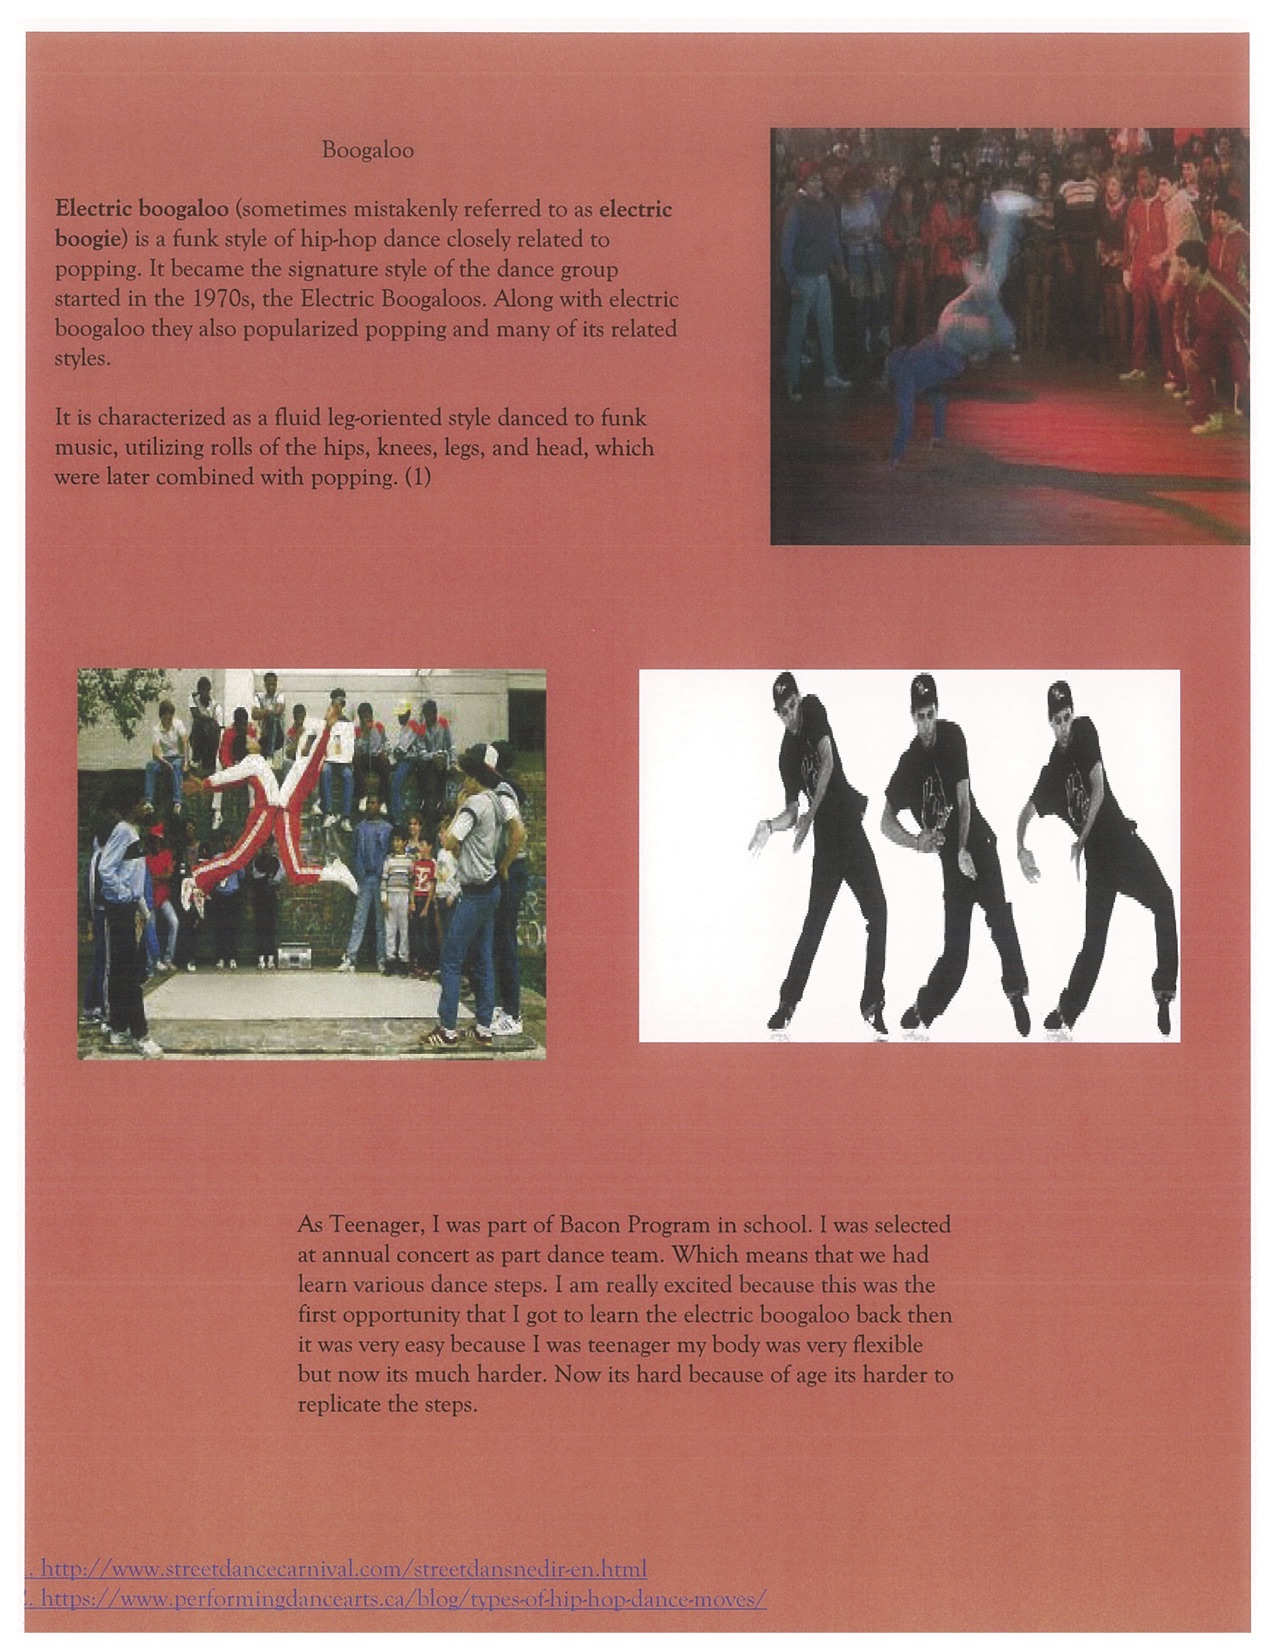 Page 3. The Boogaloo and some images of the dancers.